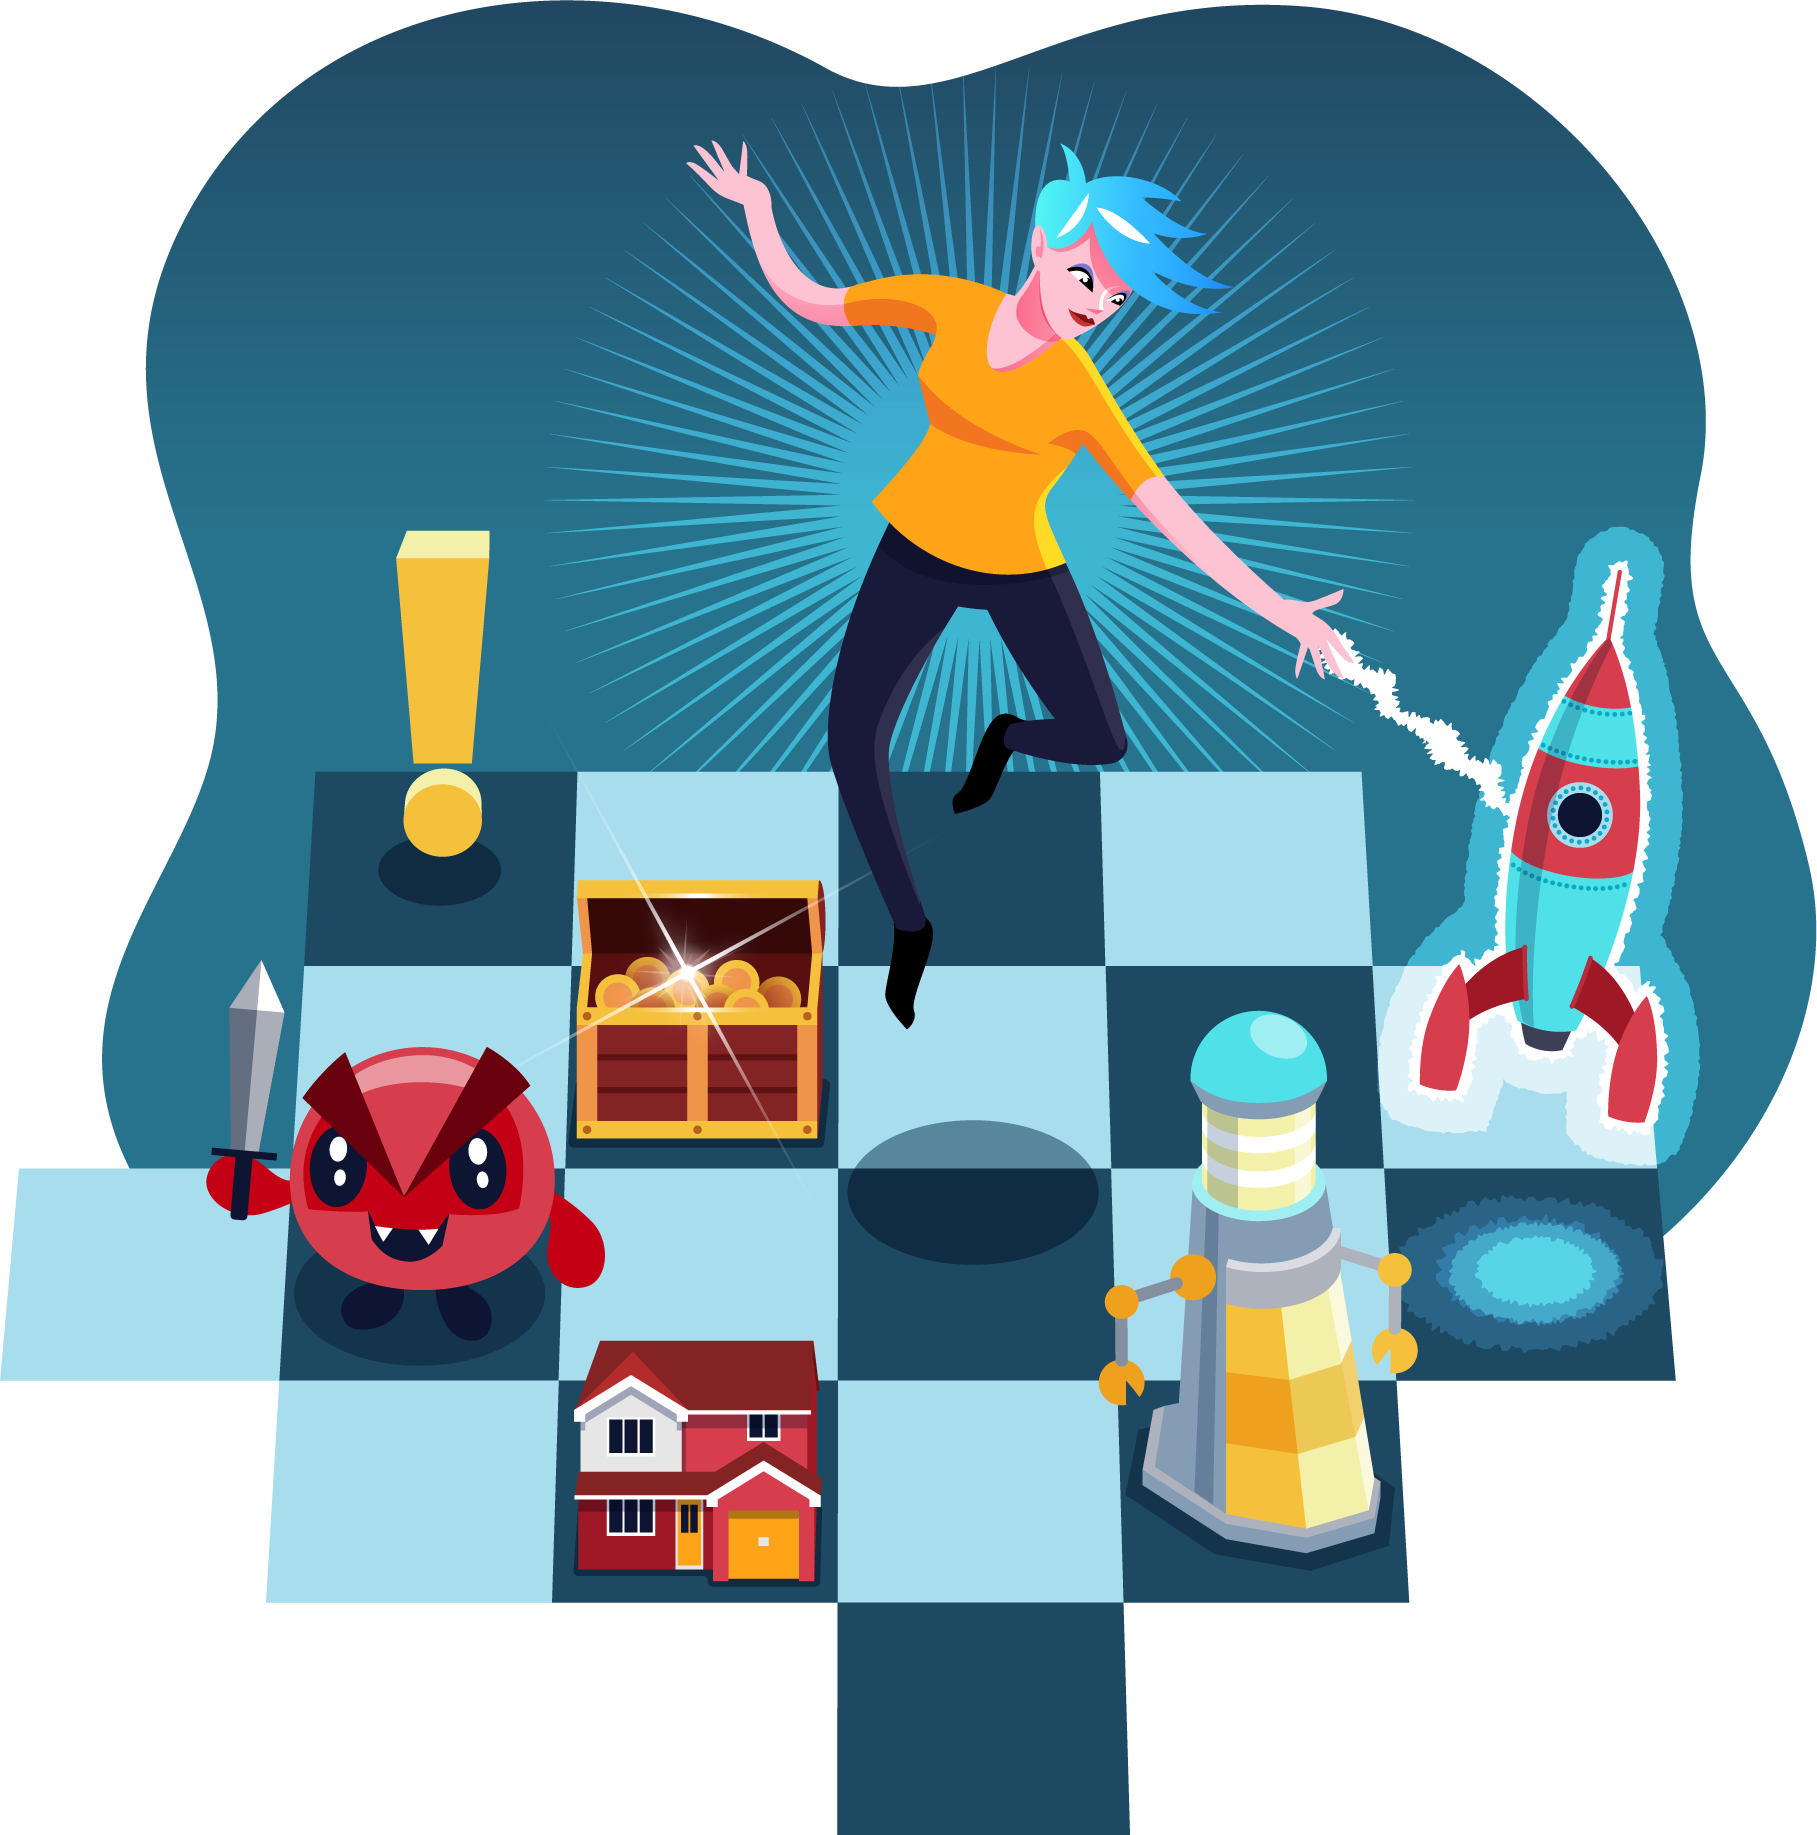 Game Planning illustration - articy avatar moving game pieces on a chess board